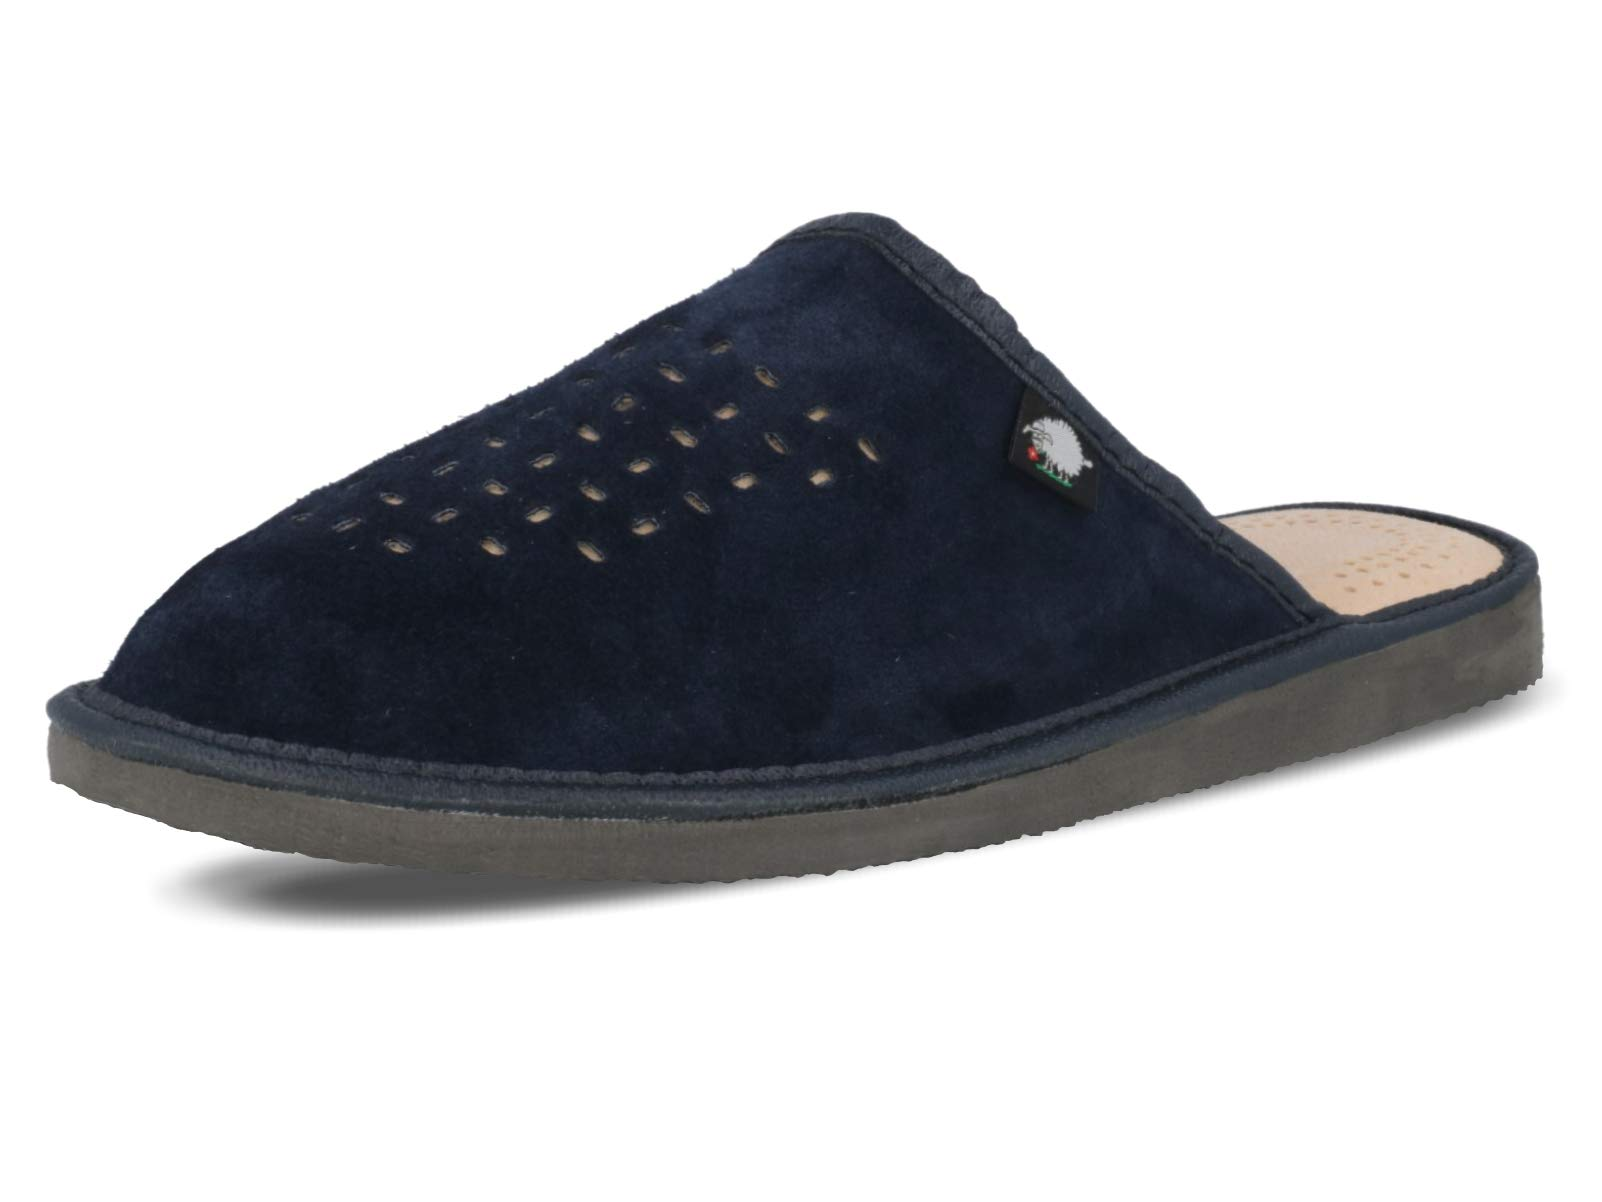 dbc665304 Best Rated in Men's Slippers & Helpful Customer Reviews - Amazon.co.uk